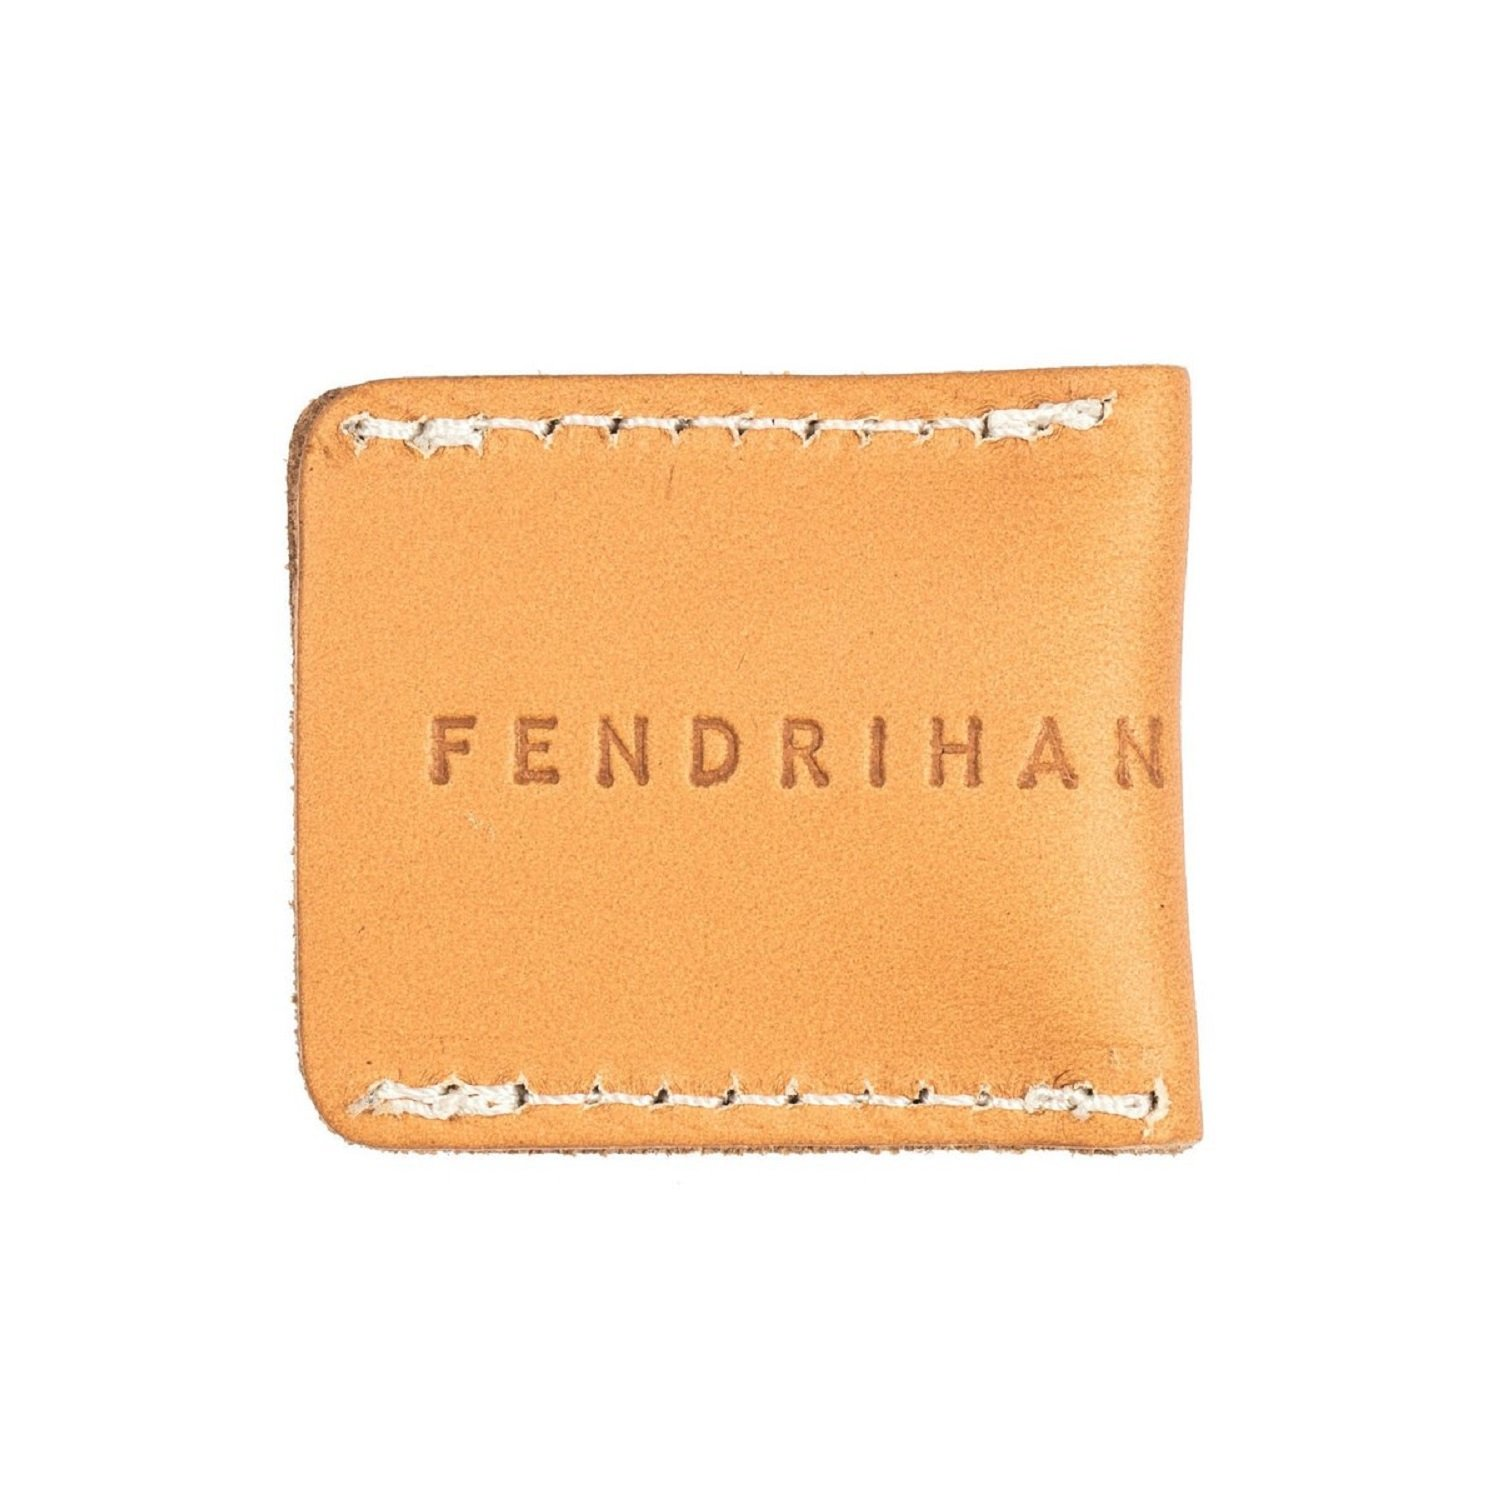 Fendrihan Safety Razor Head Leather Cover Sheath, Natural Tan